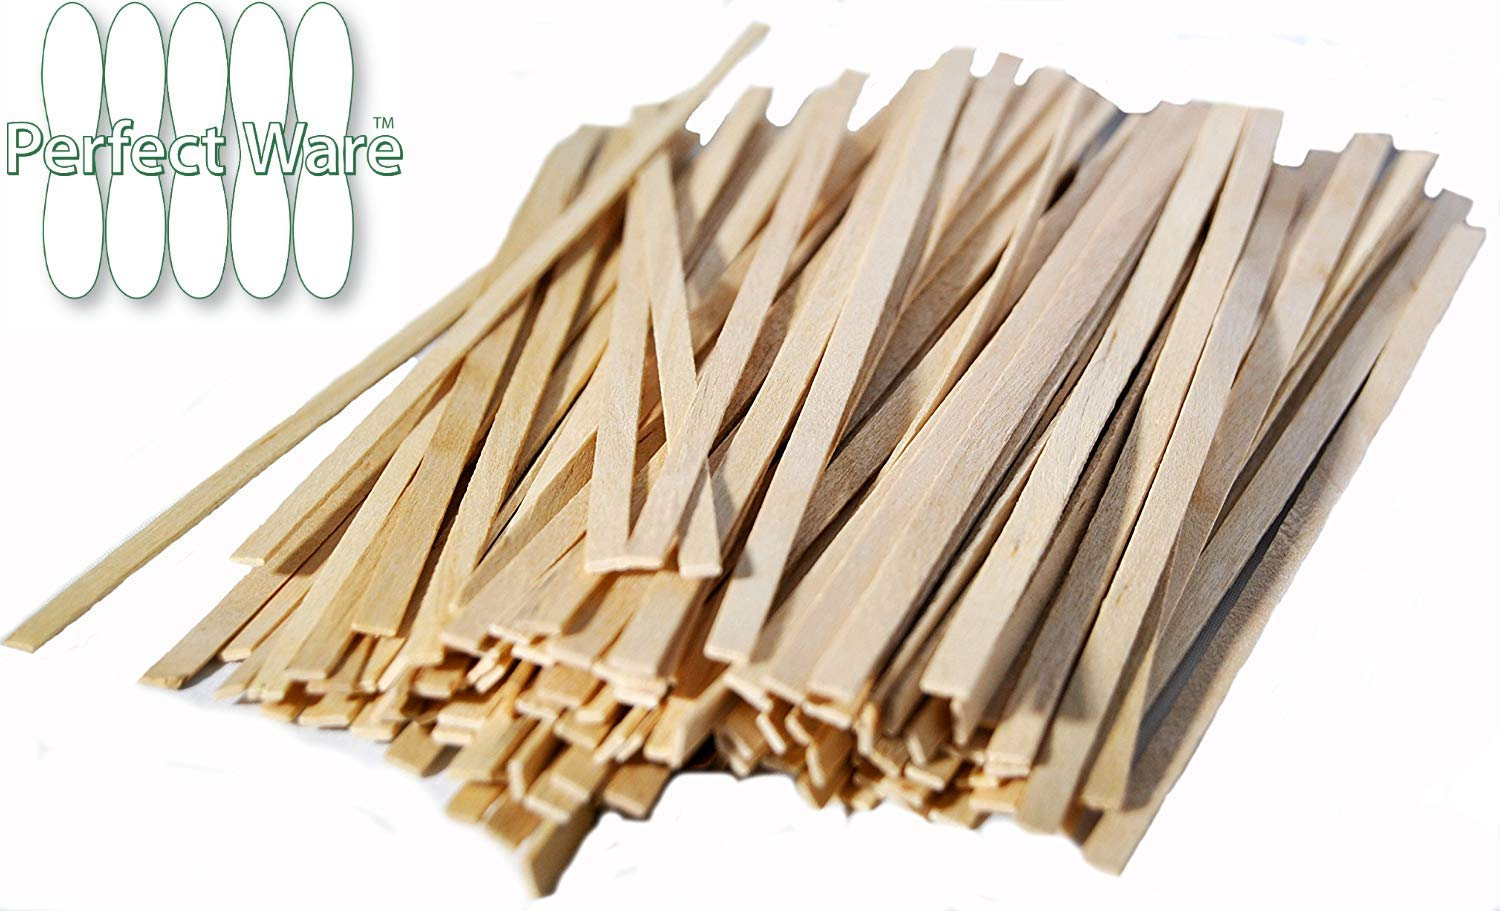 Perfect Stix Perfectware PW CS 200-2000ct Wooden Coffee Stirrer with Square Ends, 5.5'' (Pack of 2000)